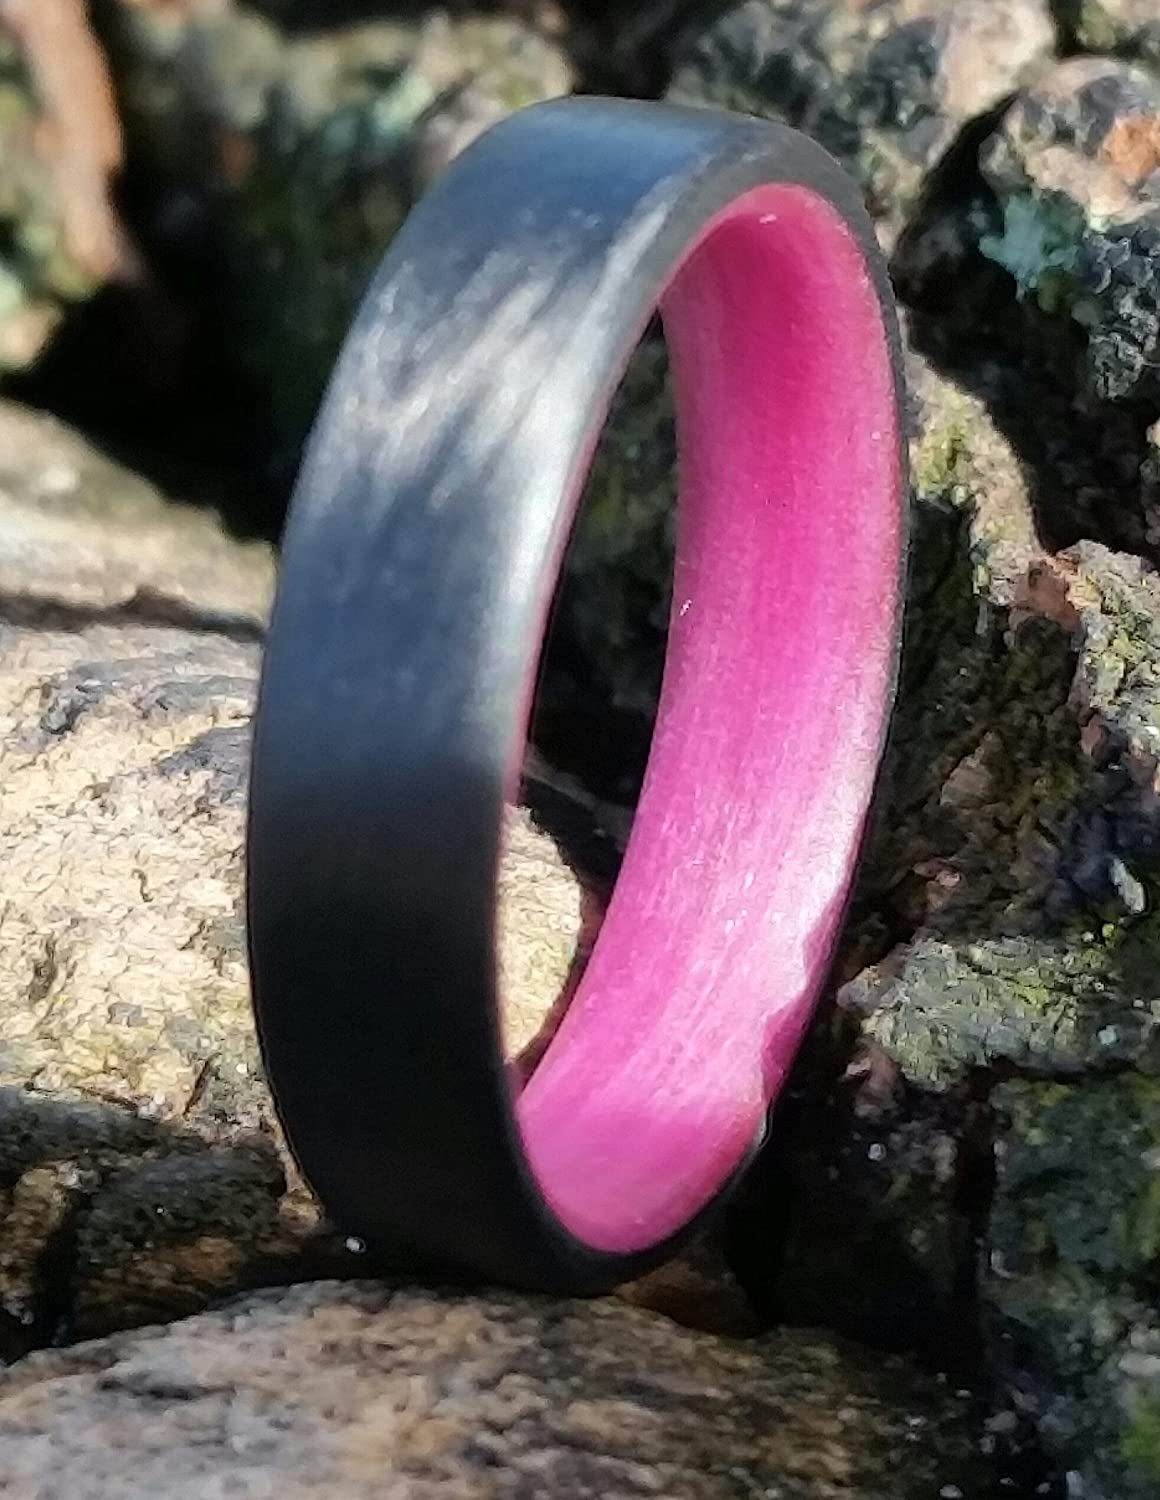 Amazon.com: Carbon Fiber Unidirectional Ring with Pink inside: Handmade